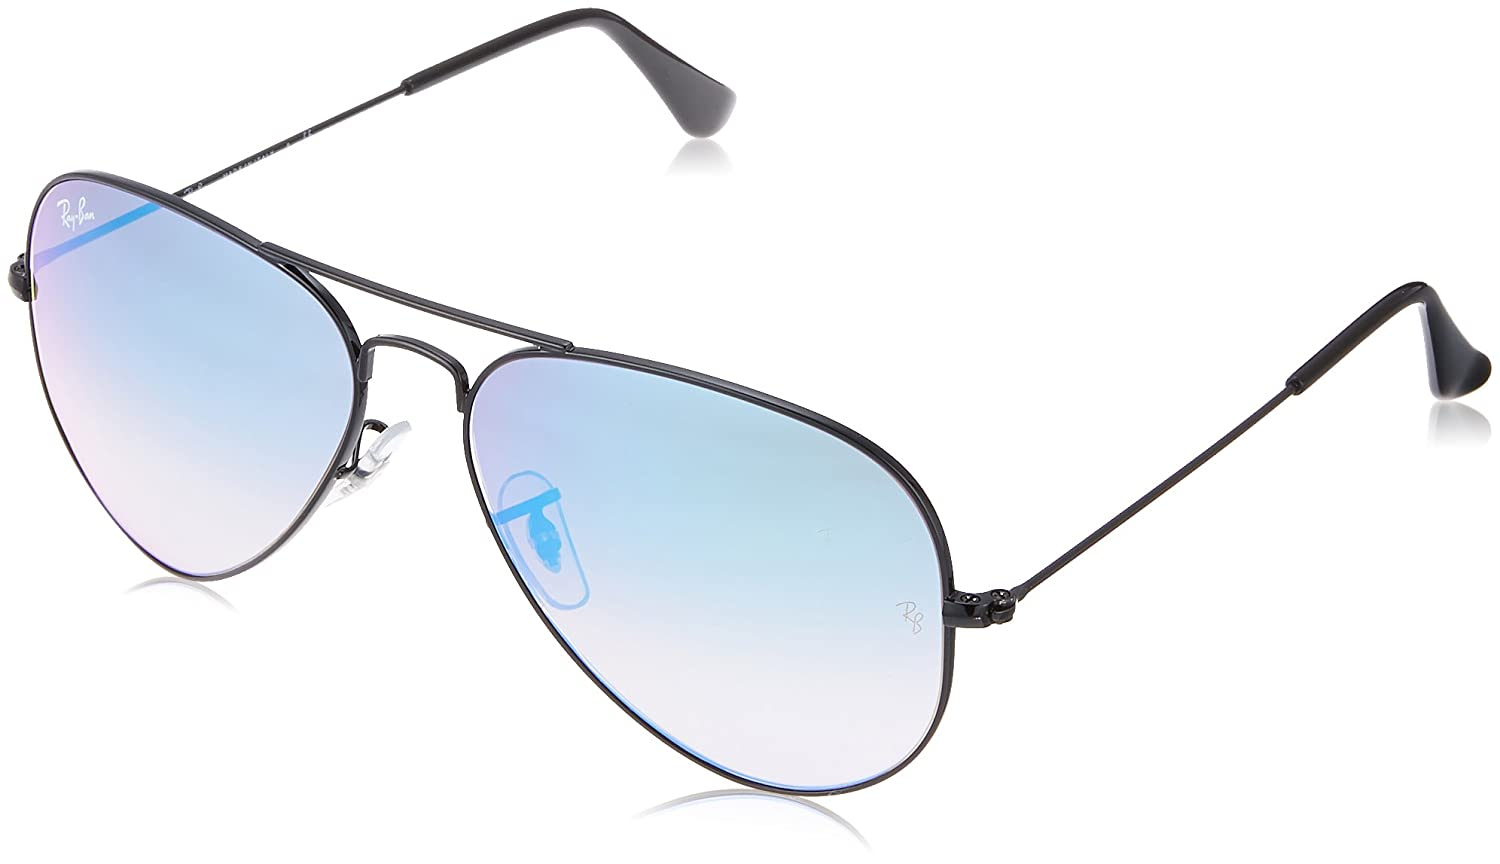 39b0f6da4445e Click Below Images to Enlarge. Style- Aviator  Color- Black  Lens- Blue  Gradient Flash ...